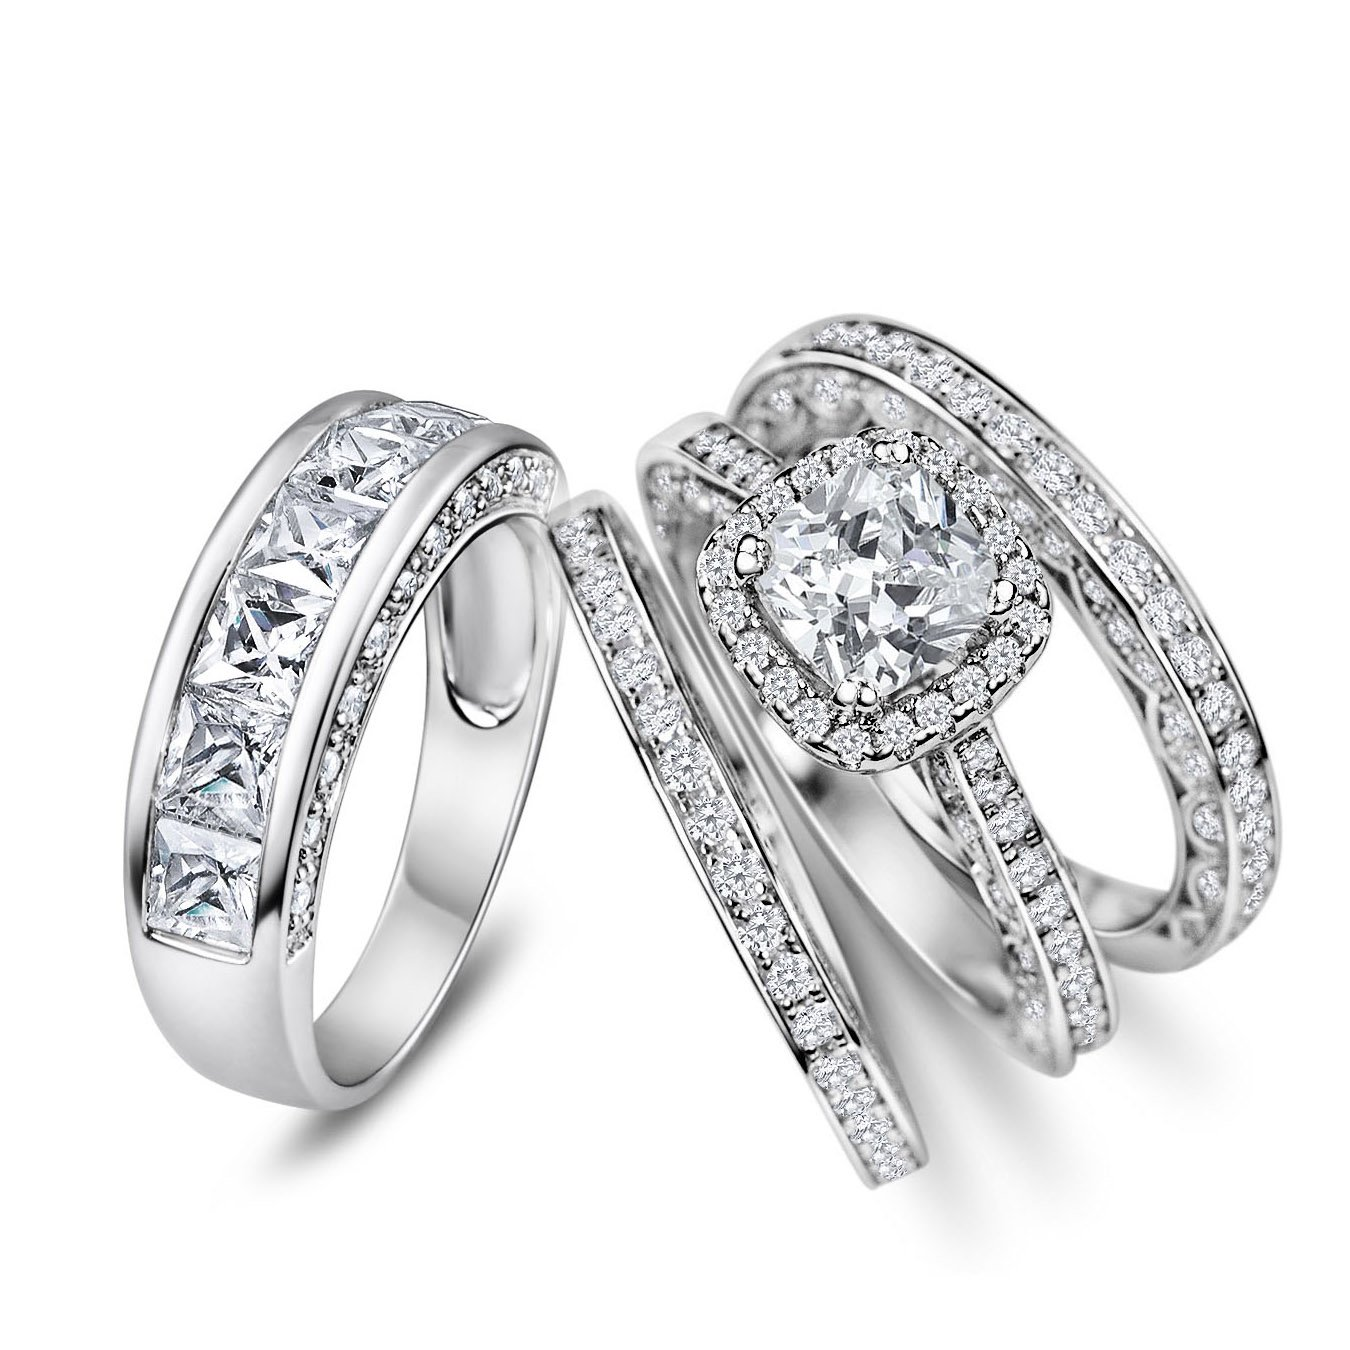 His Hers 4pc Matching Halo Cushion Cut Cz Bridal Engagement Wedding Ring Set 925 Sterling Silver Size 5-13 (Her 9 His 10)